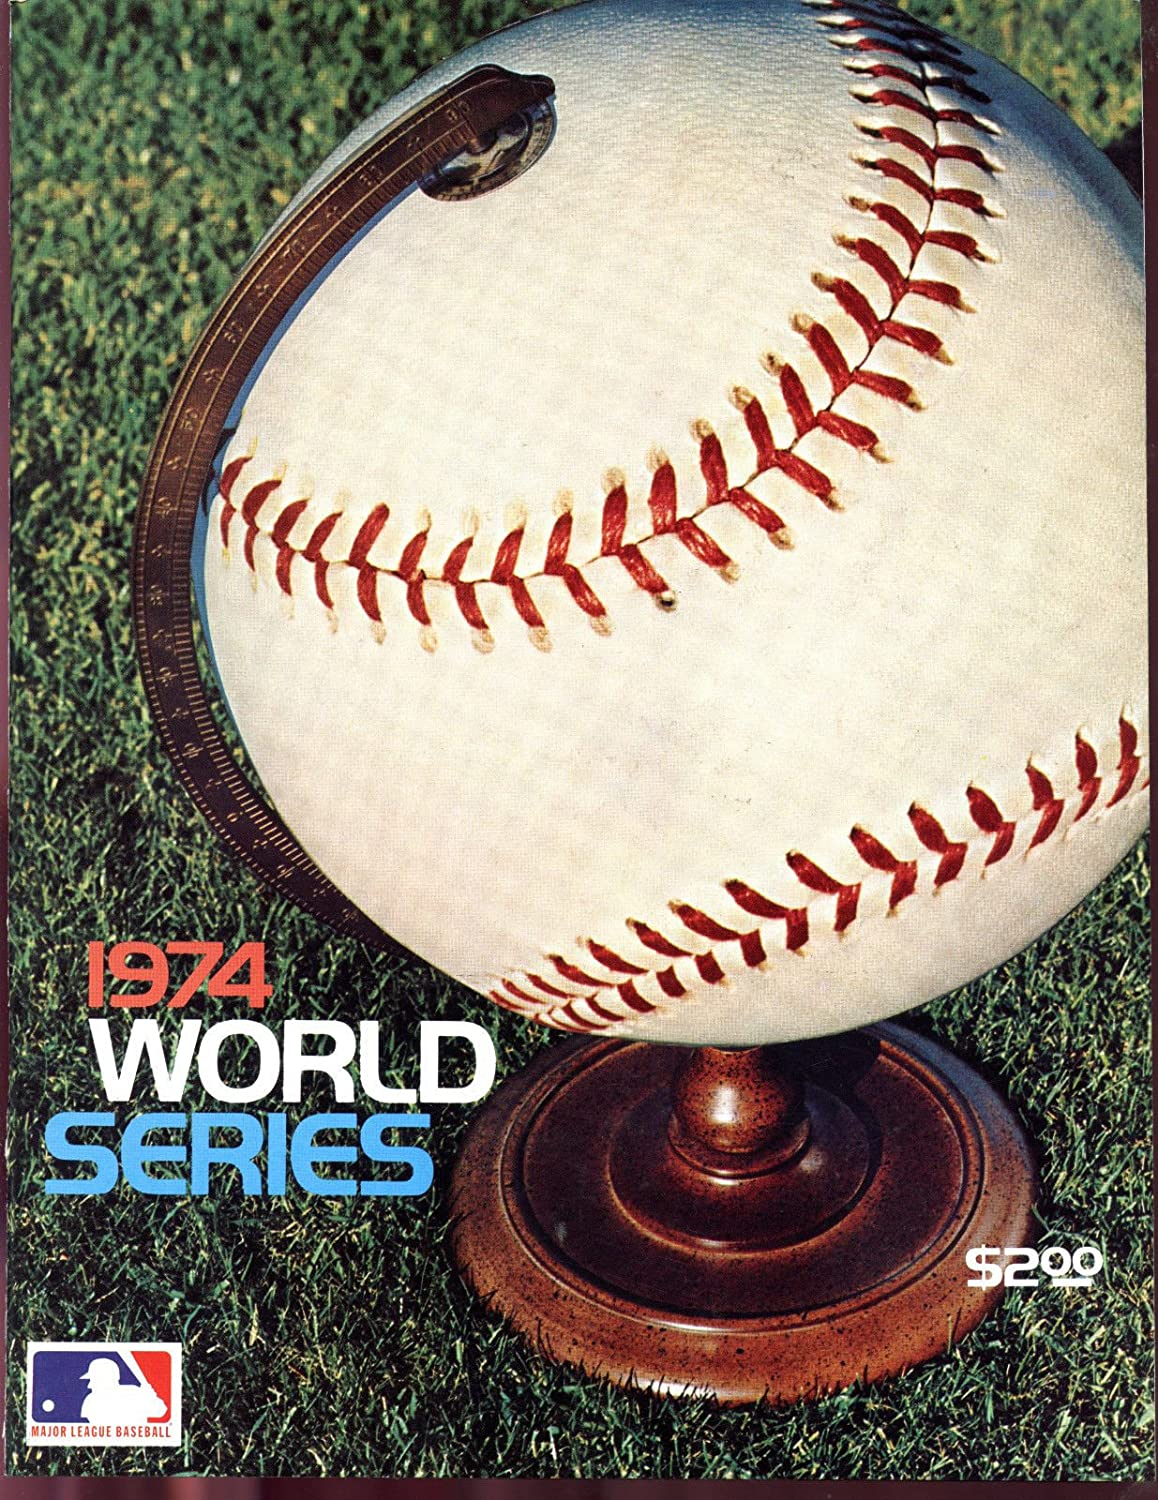 1974 World Series Program Oakland Athletics A's Los Angeles Dodgers PLUS INSERT